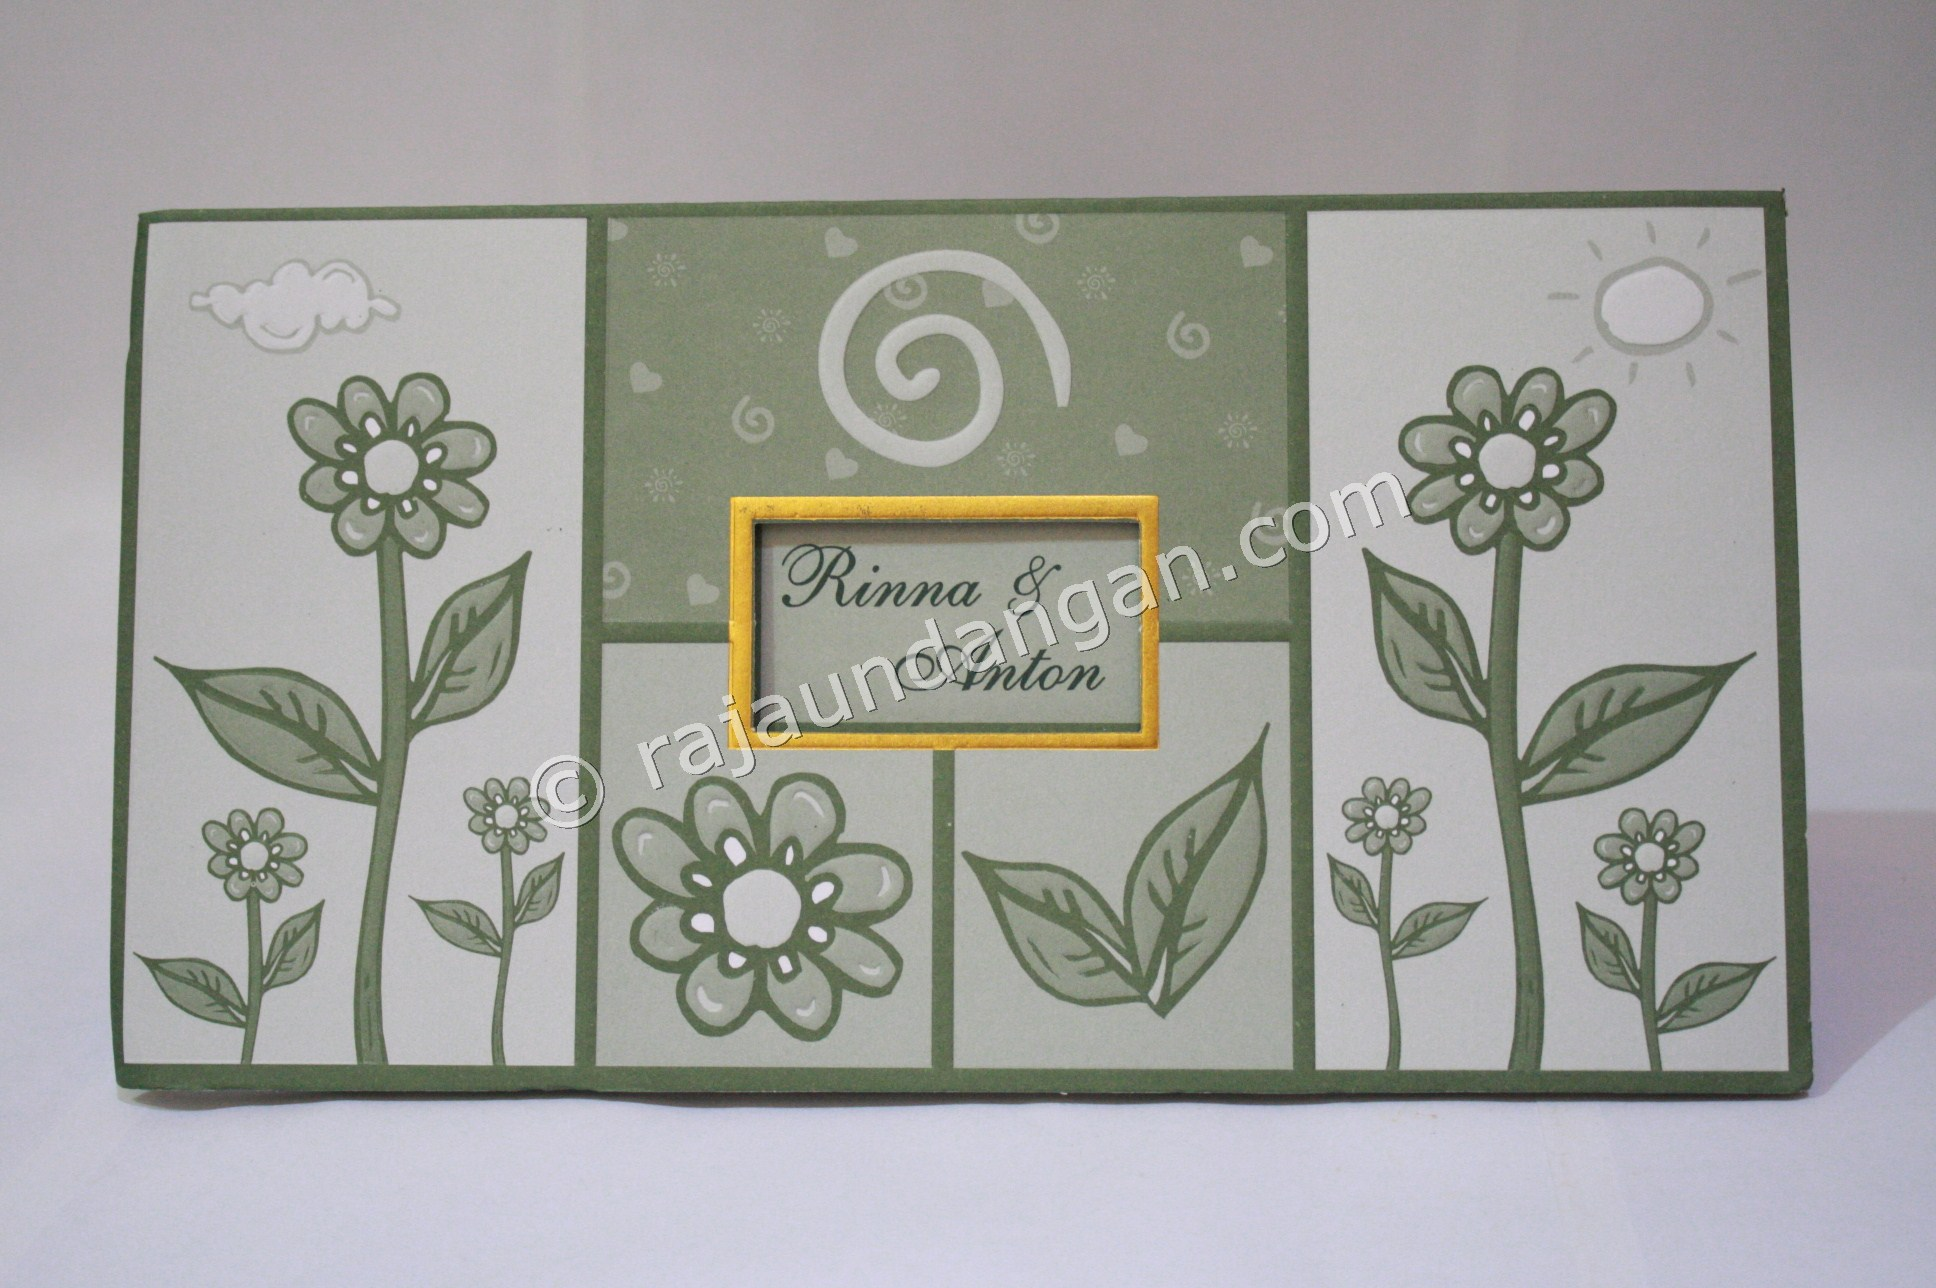 Undangan Pernikahan Softcover Rinna dan Anton 1 - Membuat Wedding Invitations Simple di Simokerto